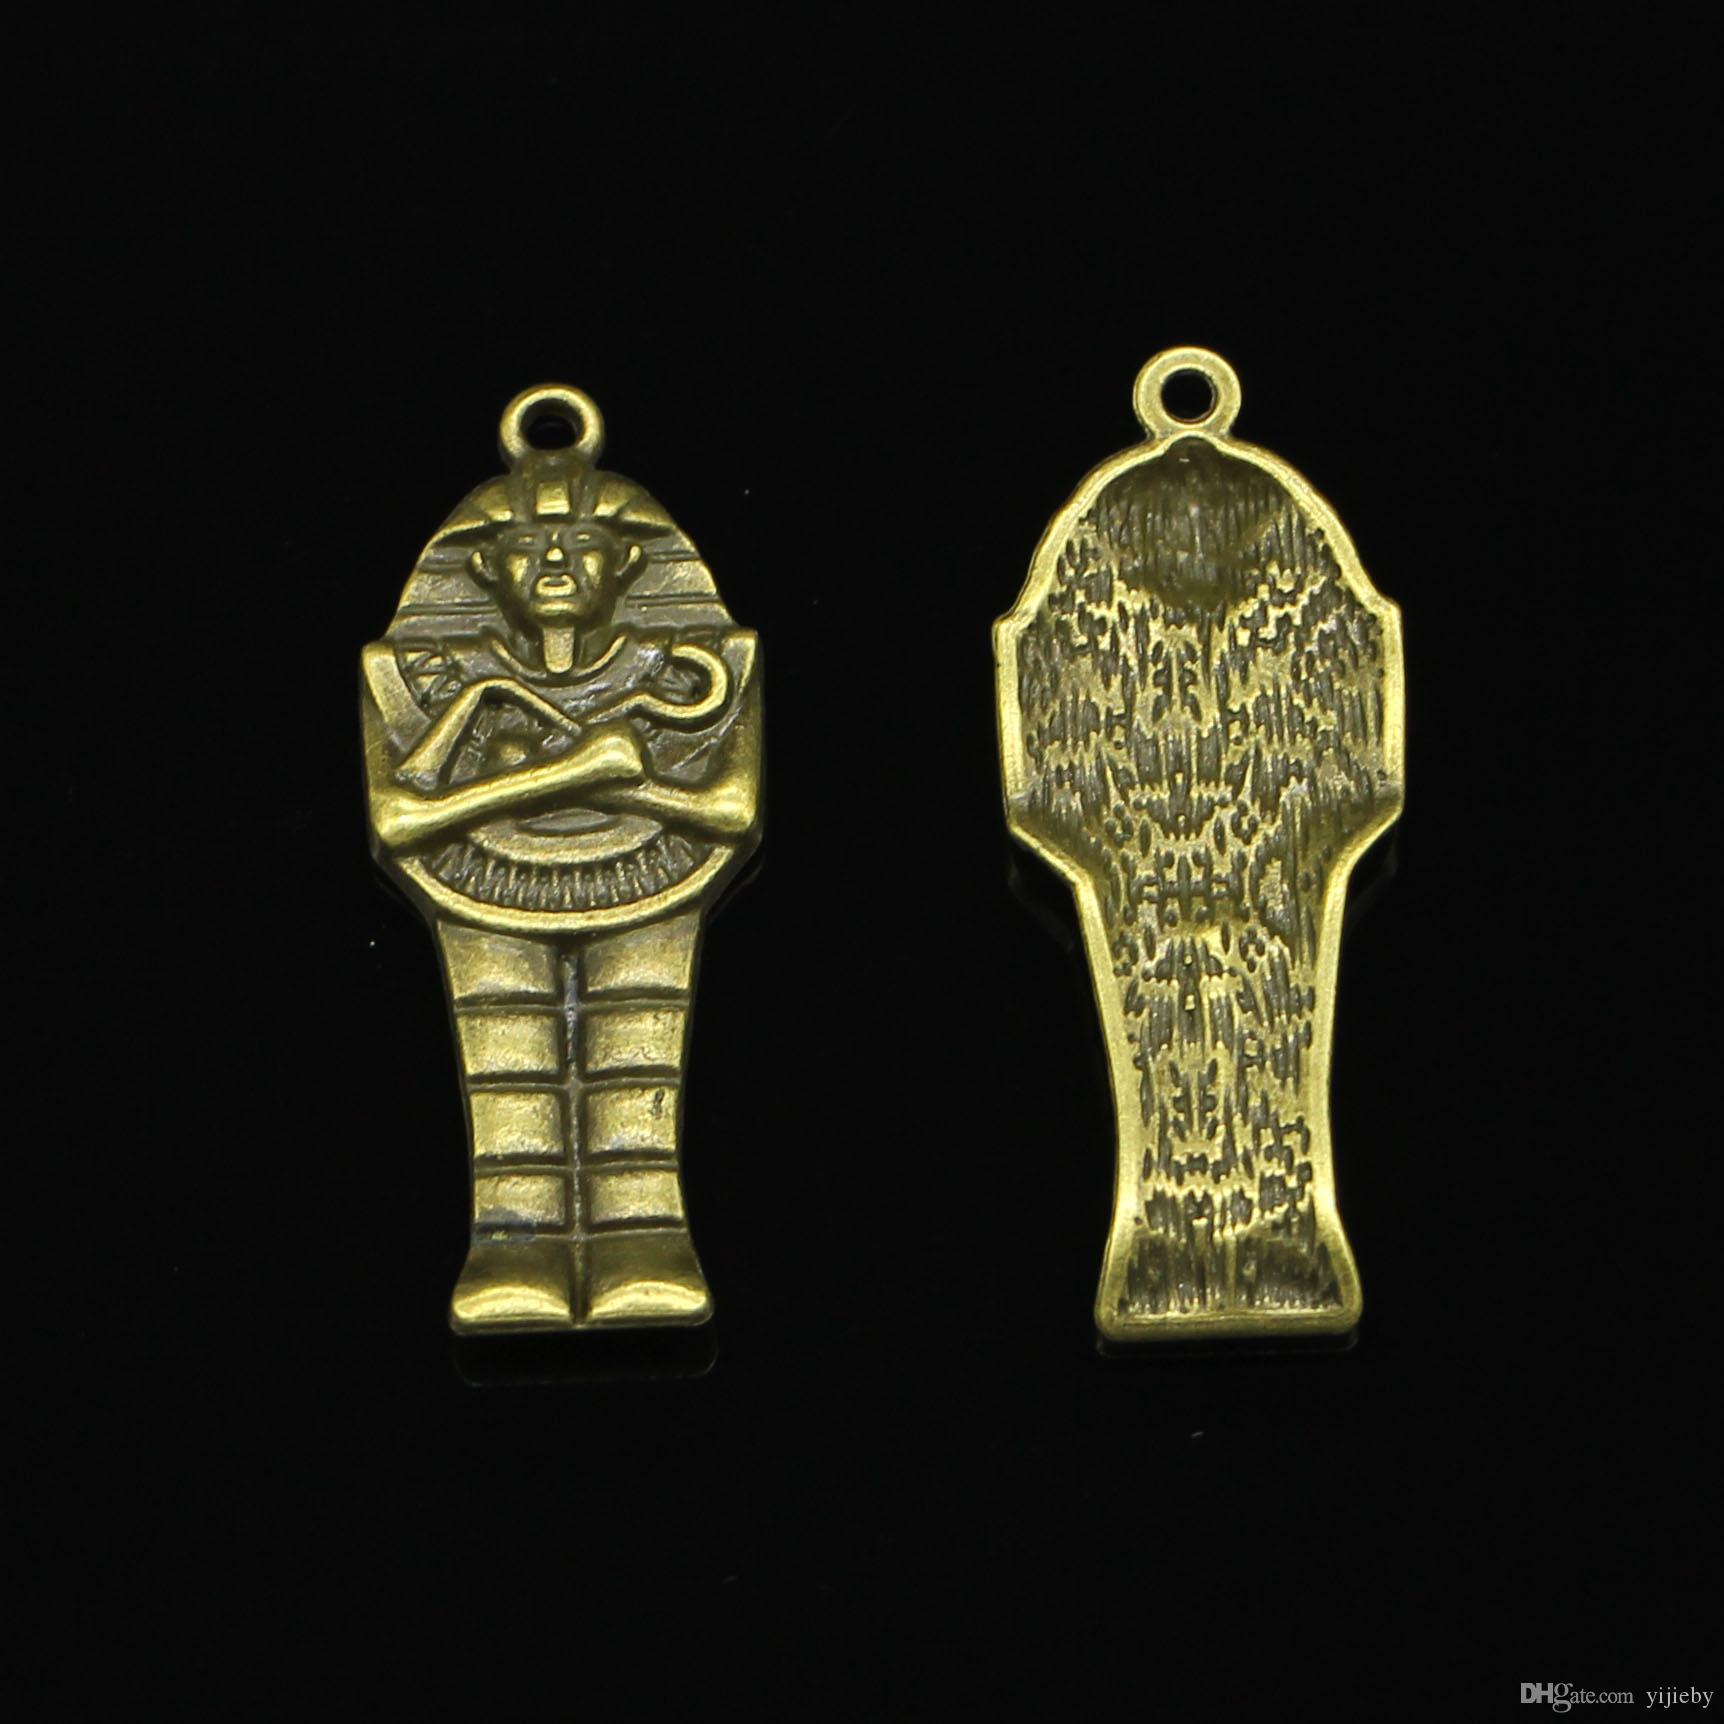 24pcs Antique Bronze Plated Egyptian mummy Charms Pendant fit Bracelet Necklace Jewelry DIY Making Accessories 45*18mm